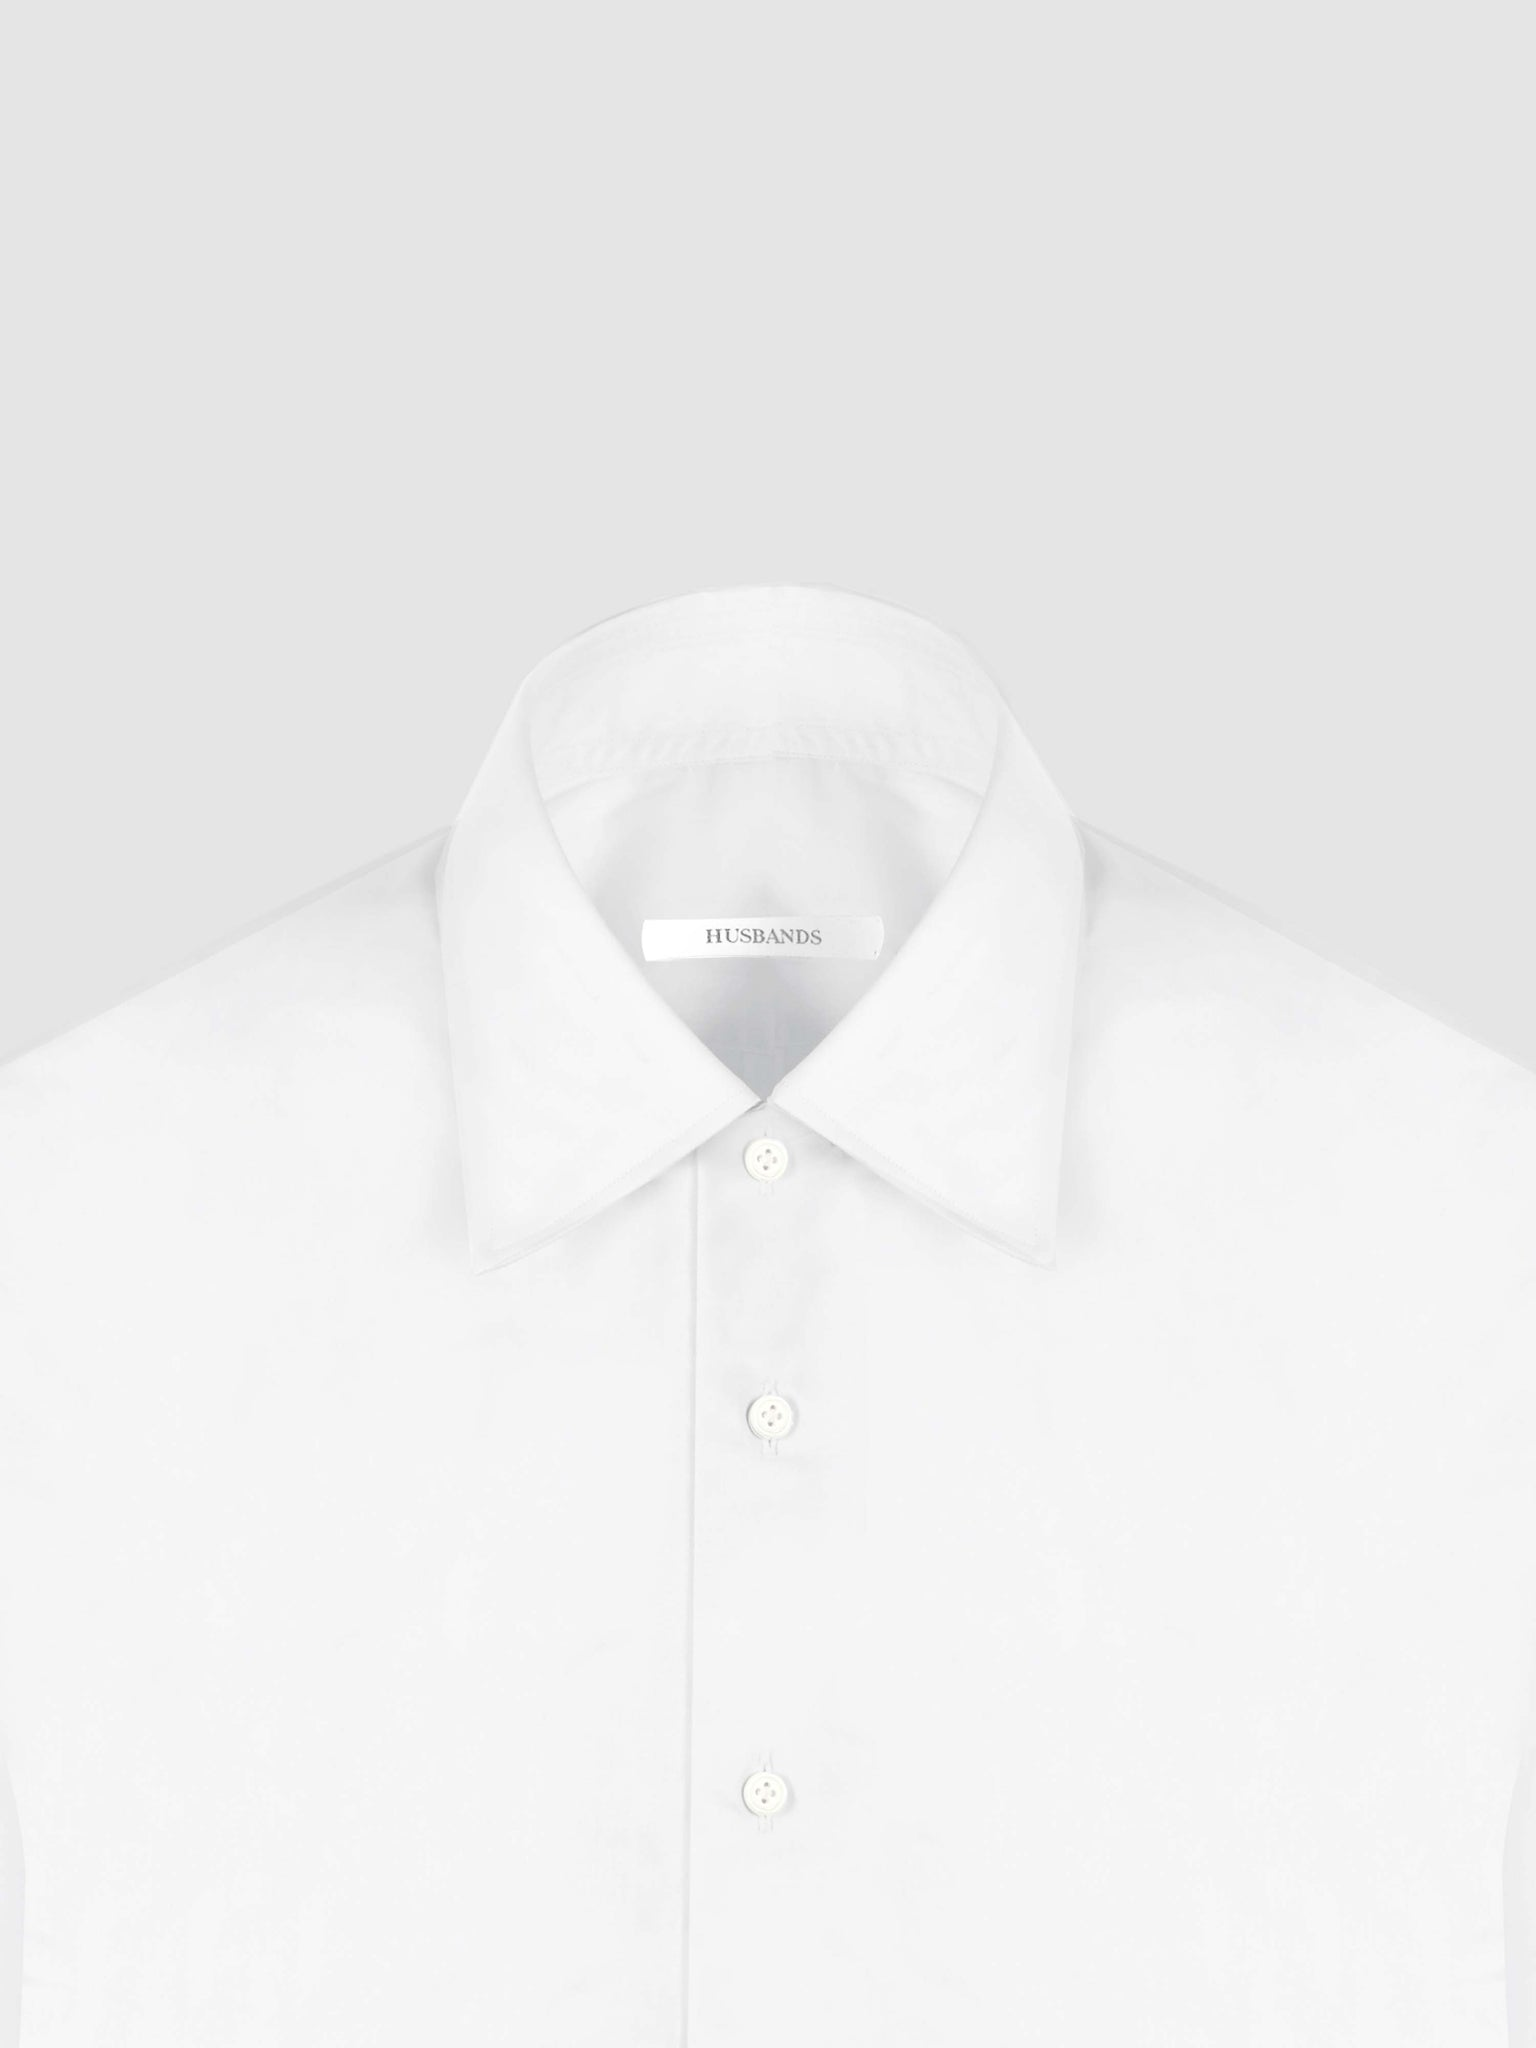 Husbands White Signature Shirt